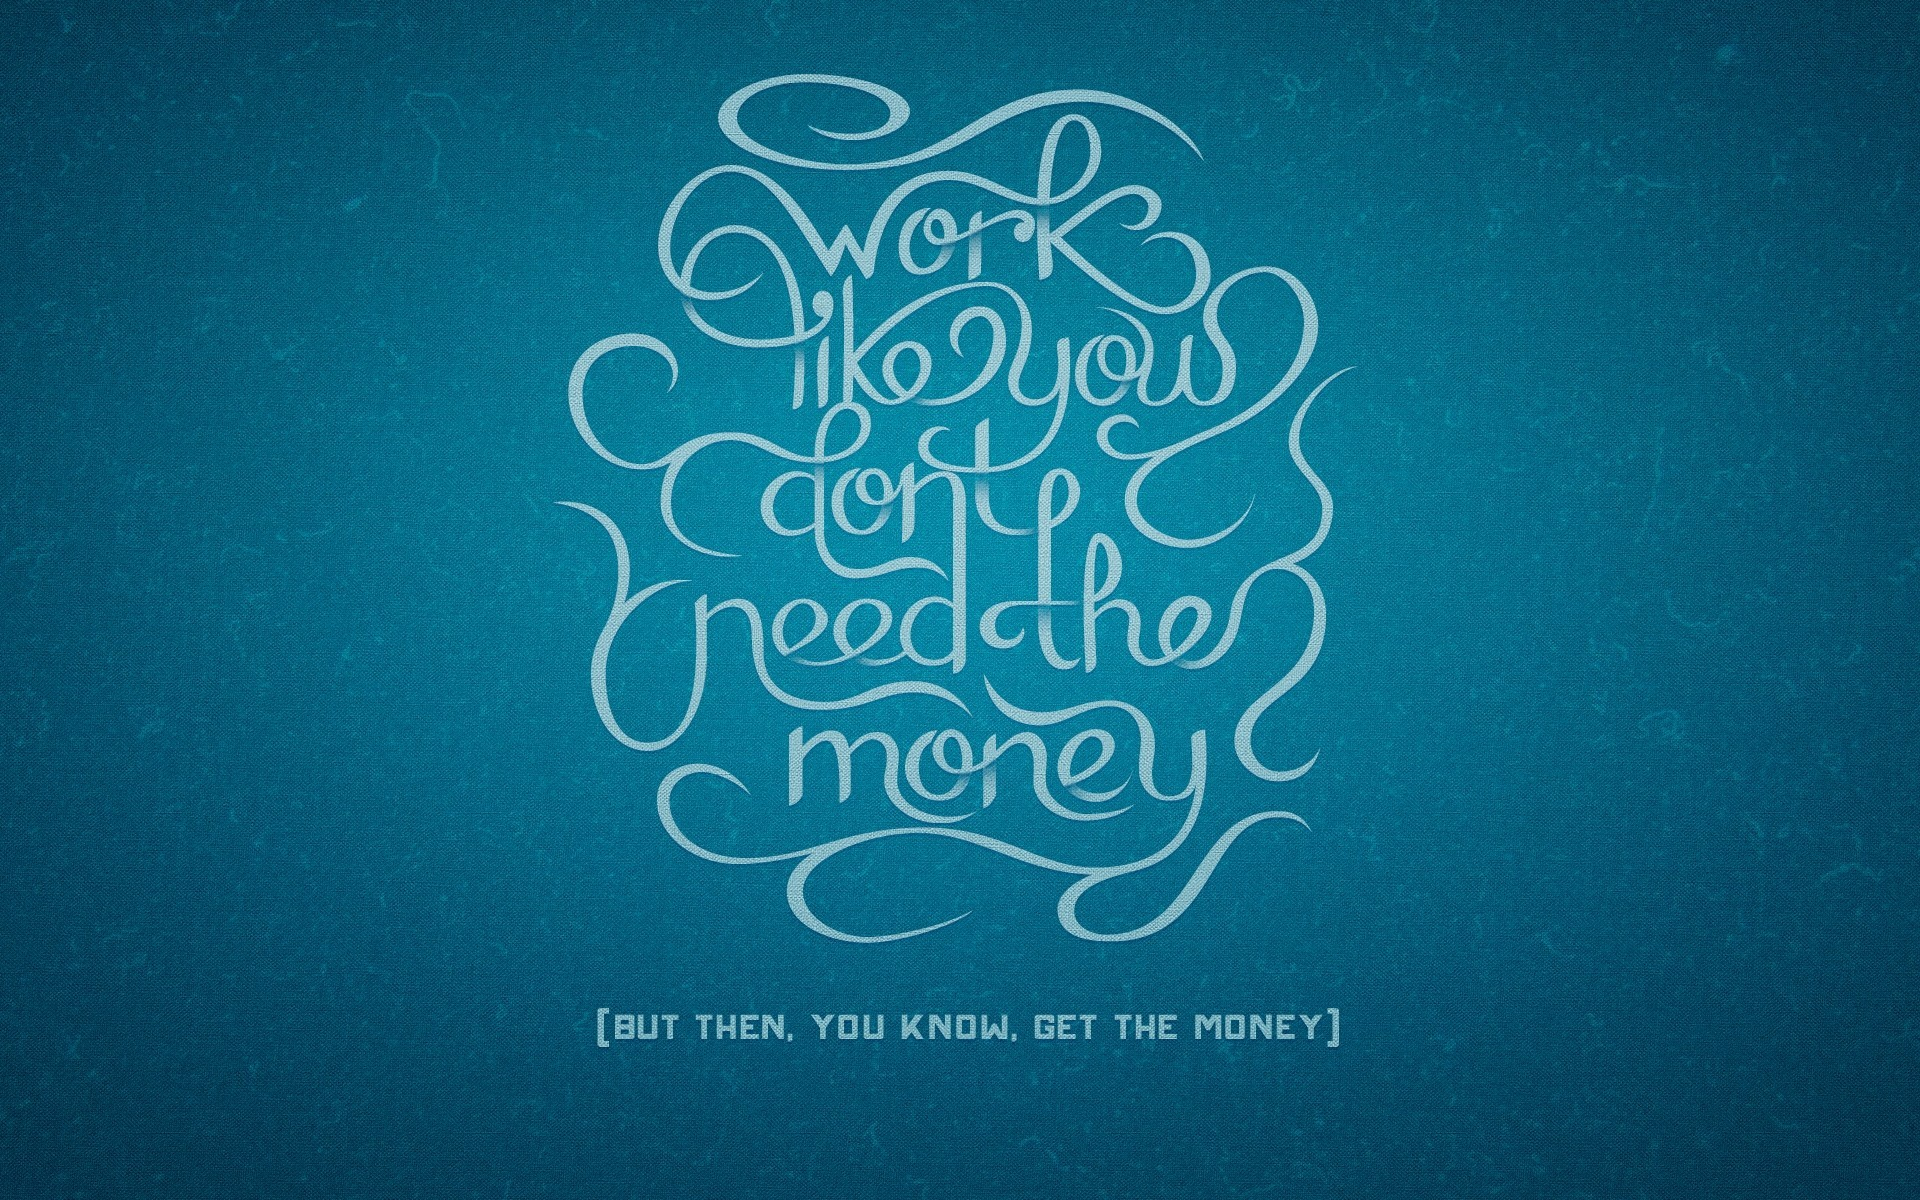 Advice on work and money Wallpaper 9145 1920x1200